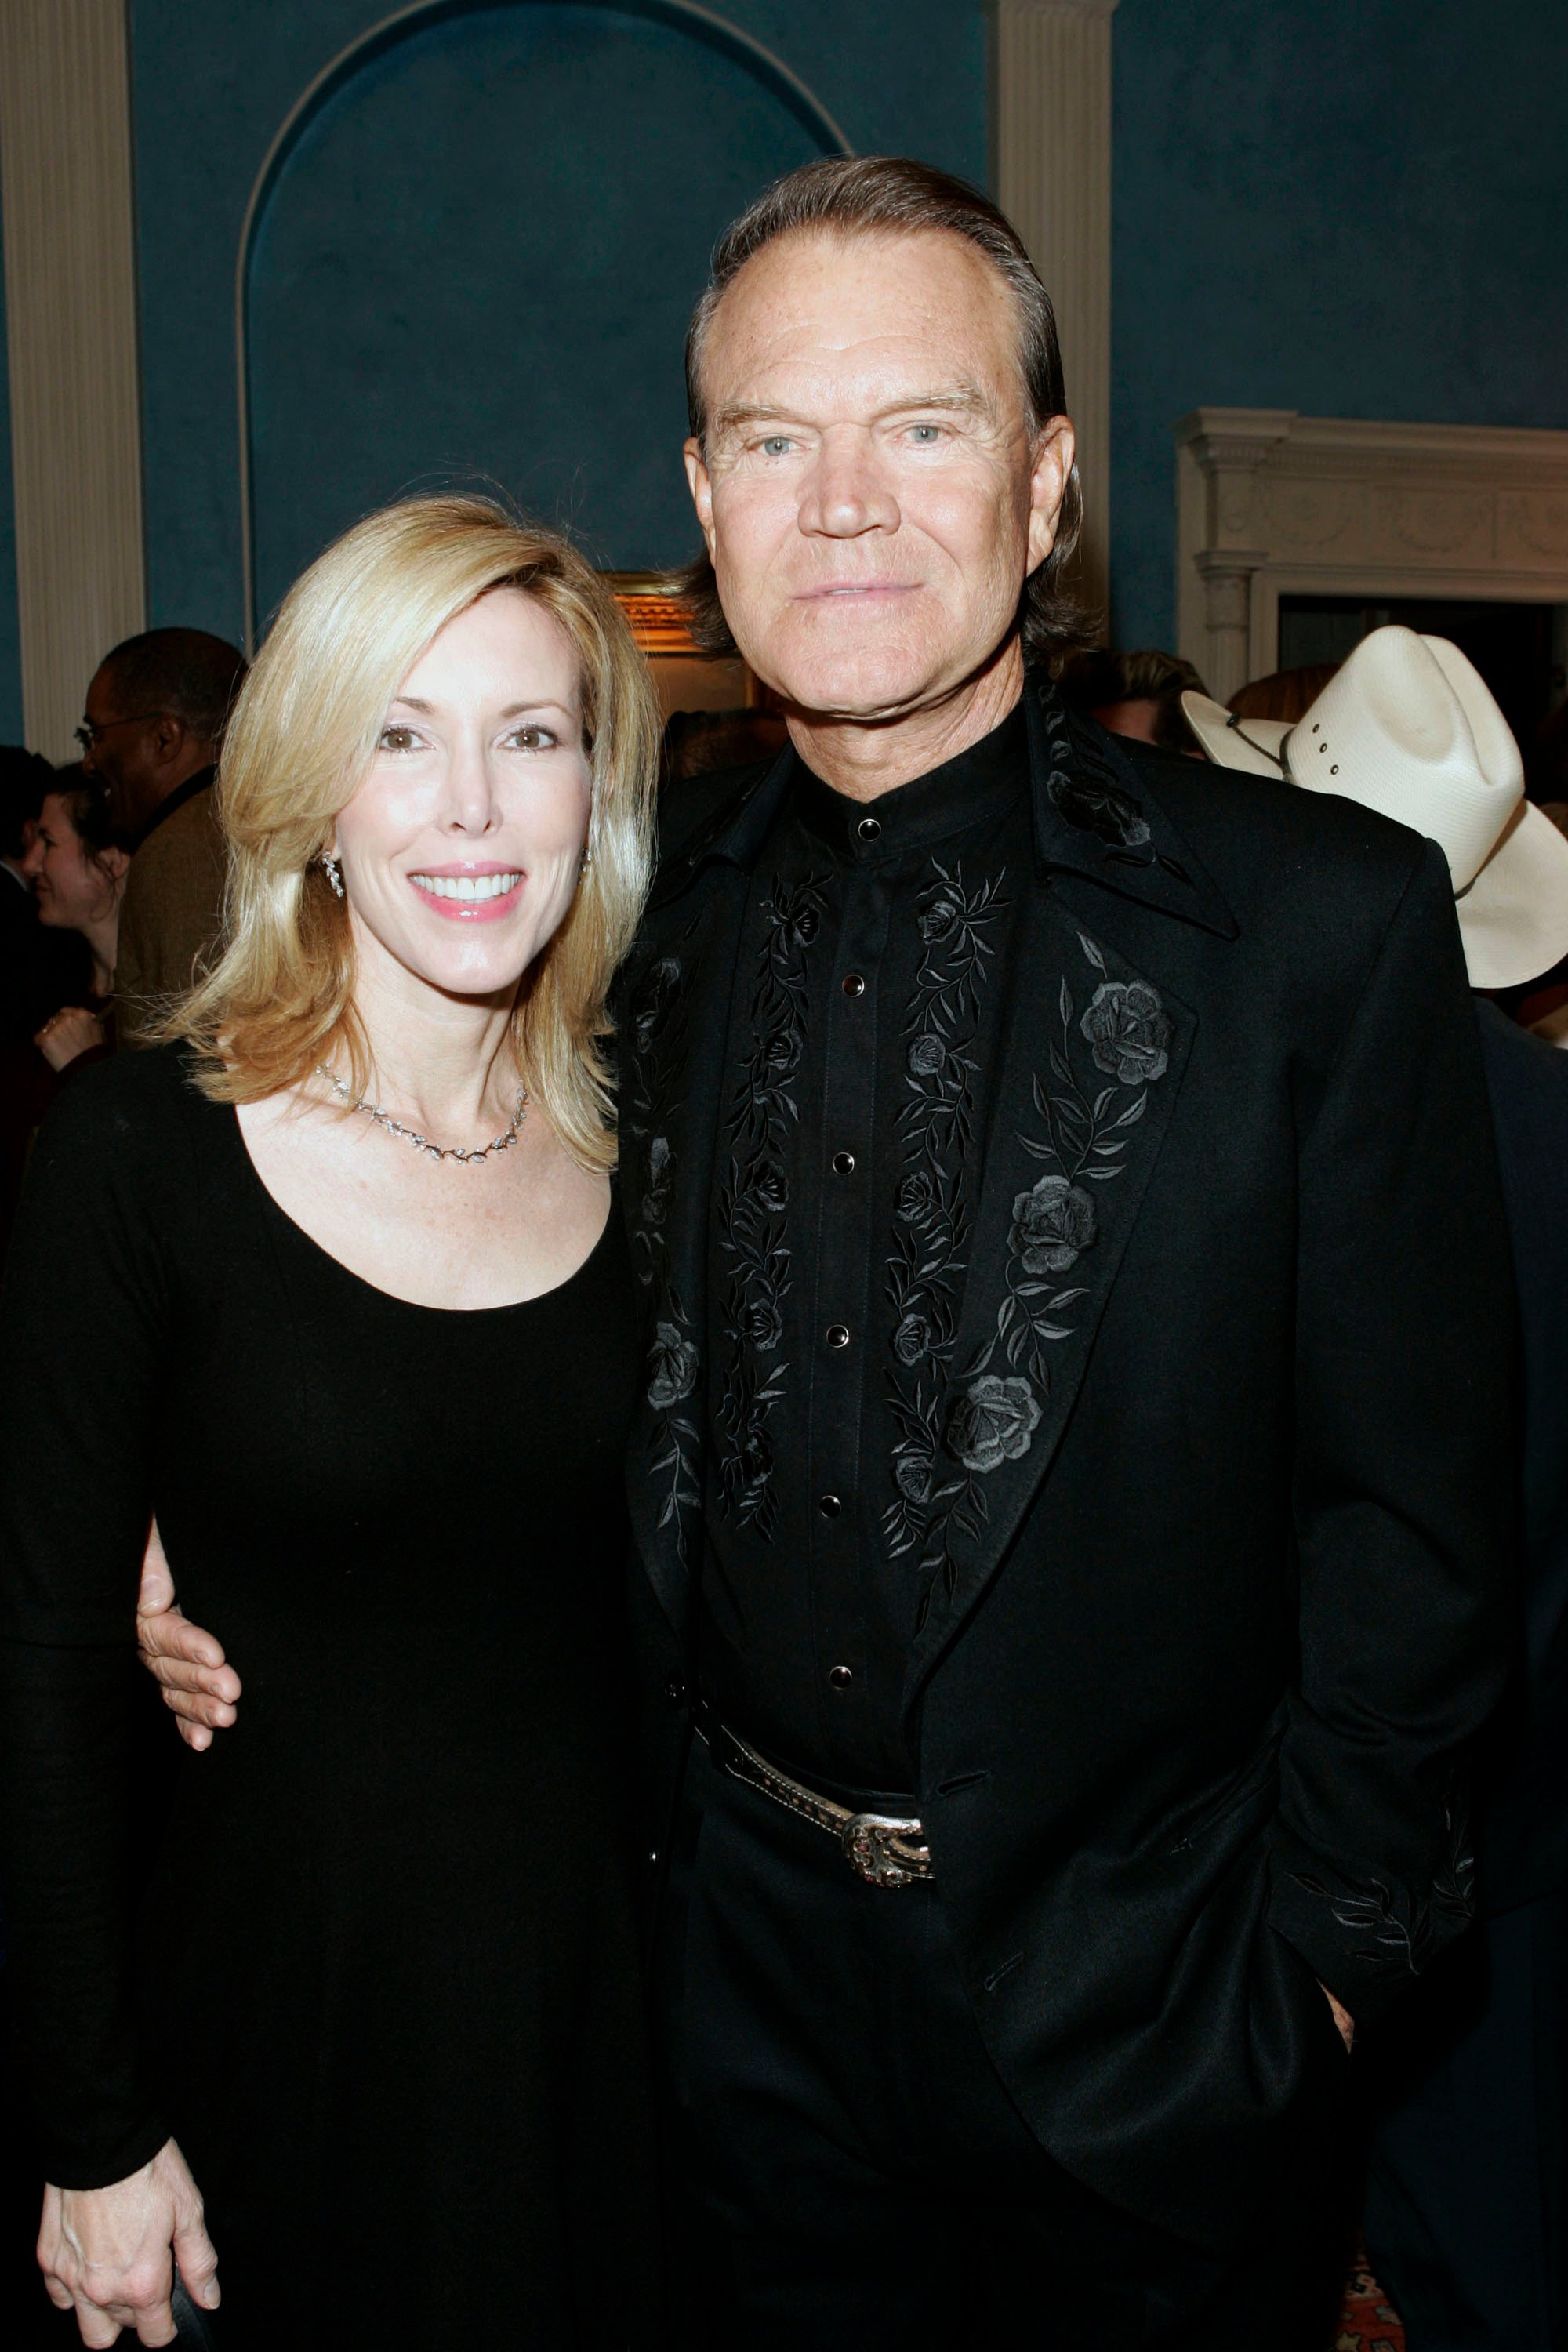 Musician Glenn Campbell (R) and wife Kim Campbell (L) attend the welcome reception for the nominees of the 39th CMA Awards at Gracie Mansion November 14, 2005 | Photo: Getty Images